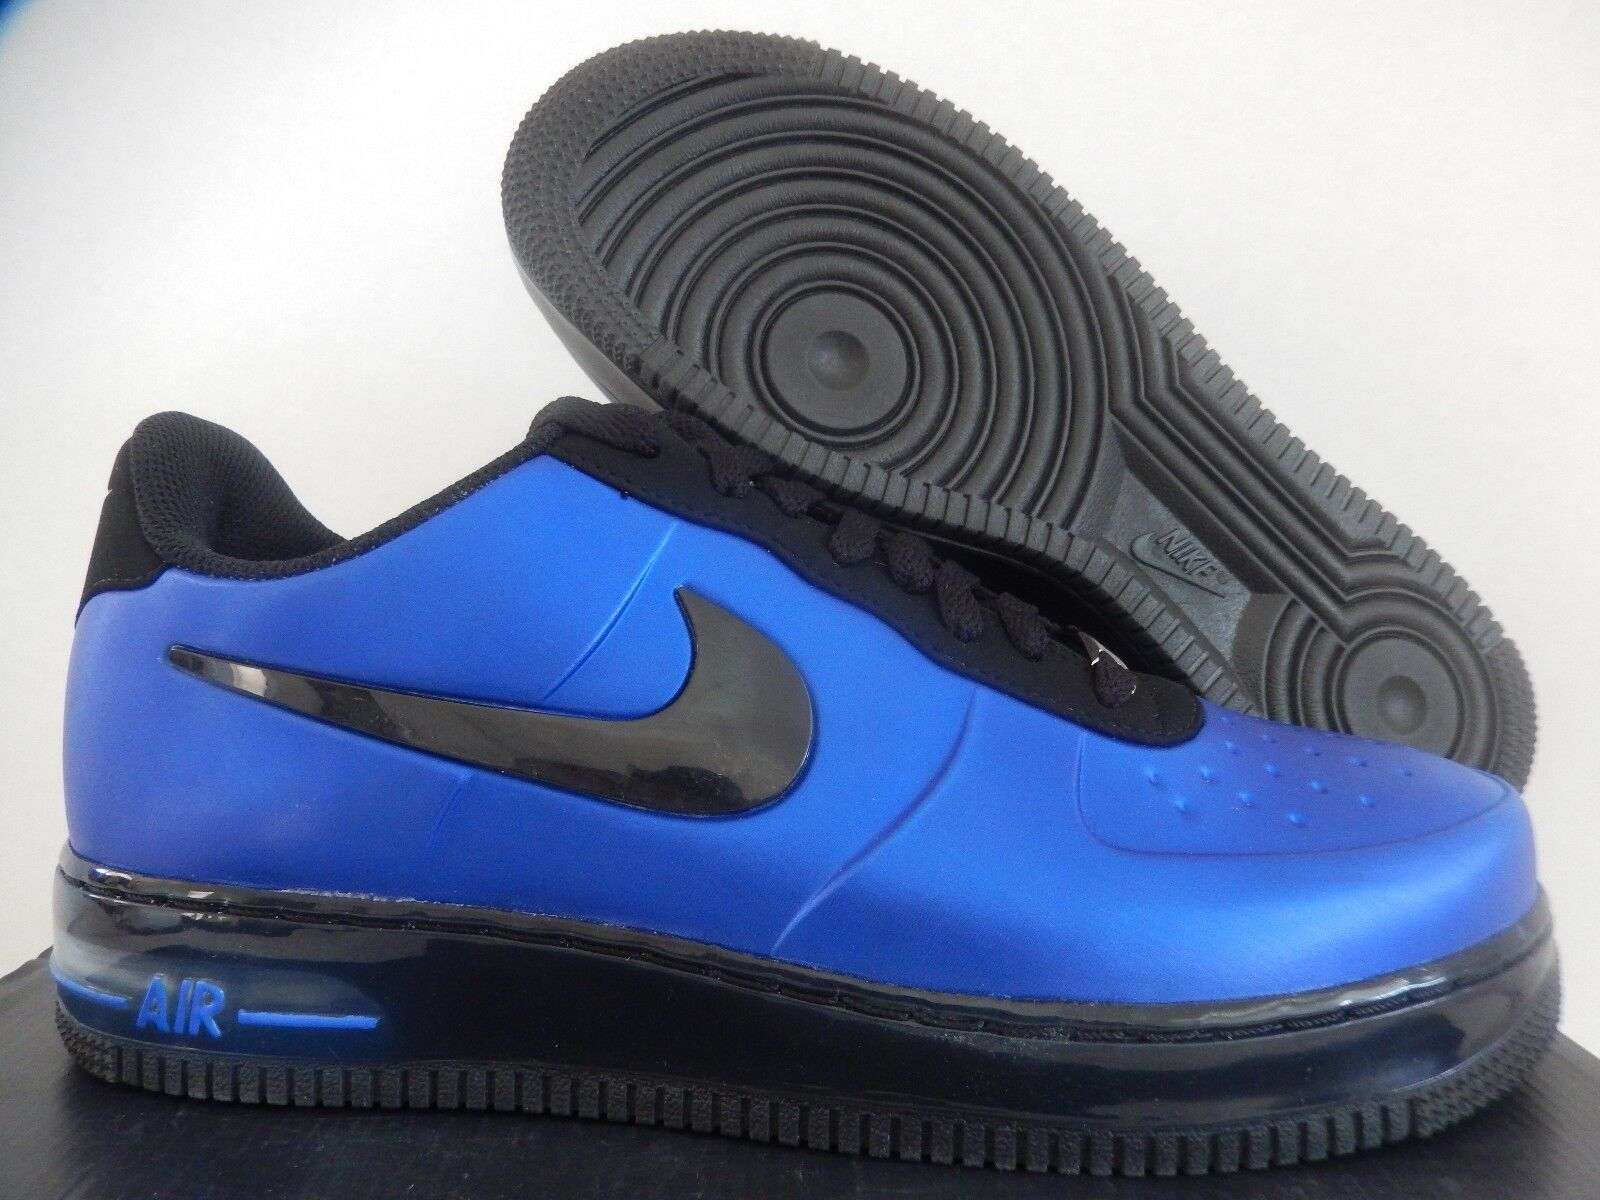 80314f36c46 ... authentic upc 886668536545 product image for nike air force 1  foamposite pro low royal blue sz